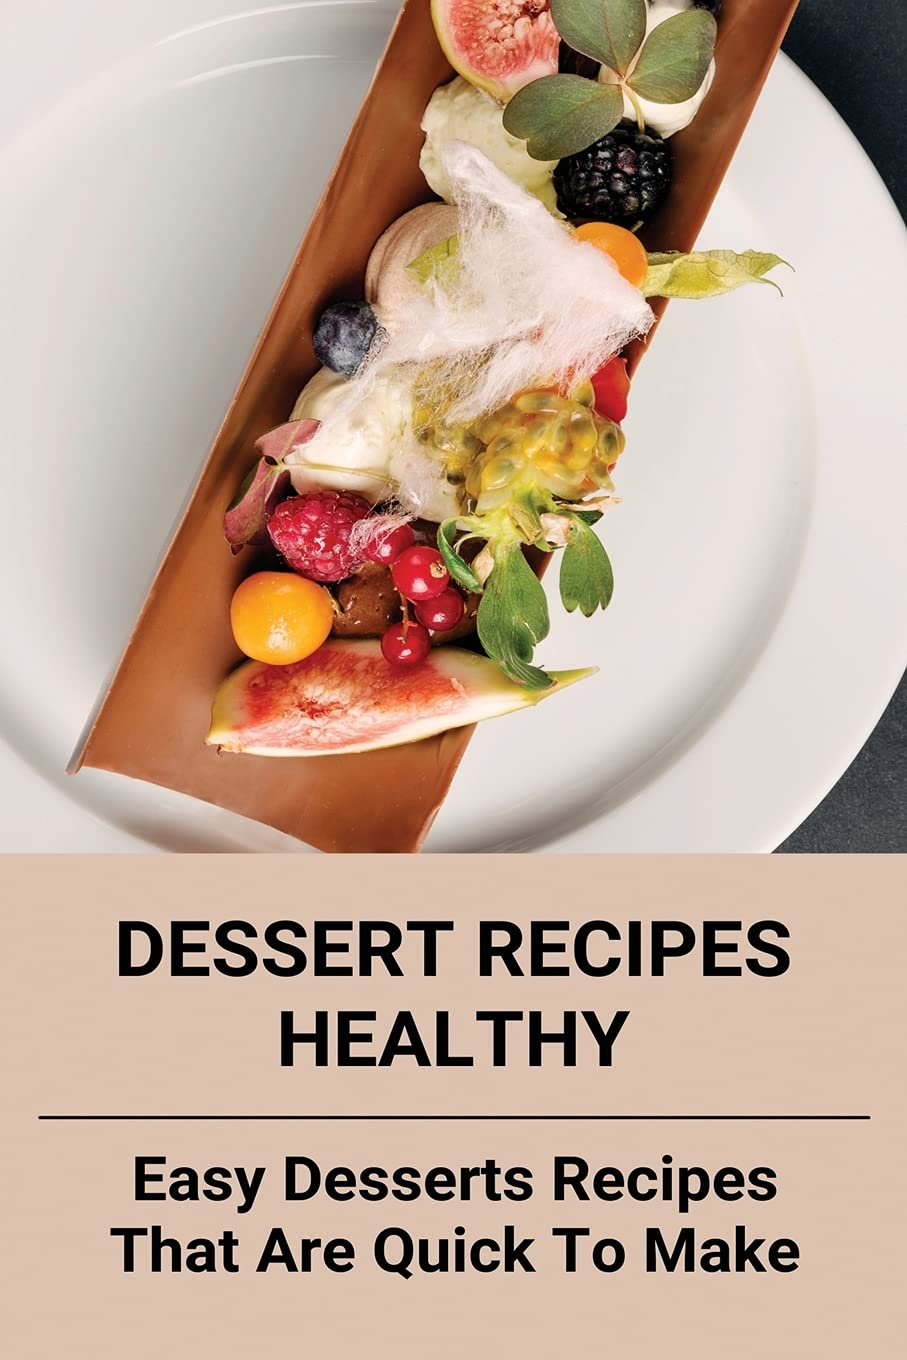 Dessert Recipes Healthy: Easy Desserts Recipes That Are Quick To Make: Desserts High In Vitamins And Minerals